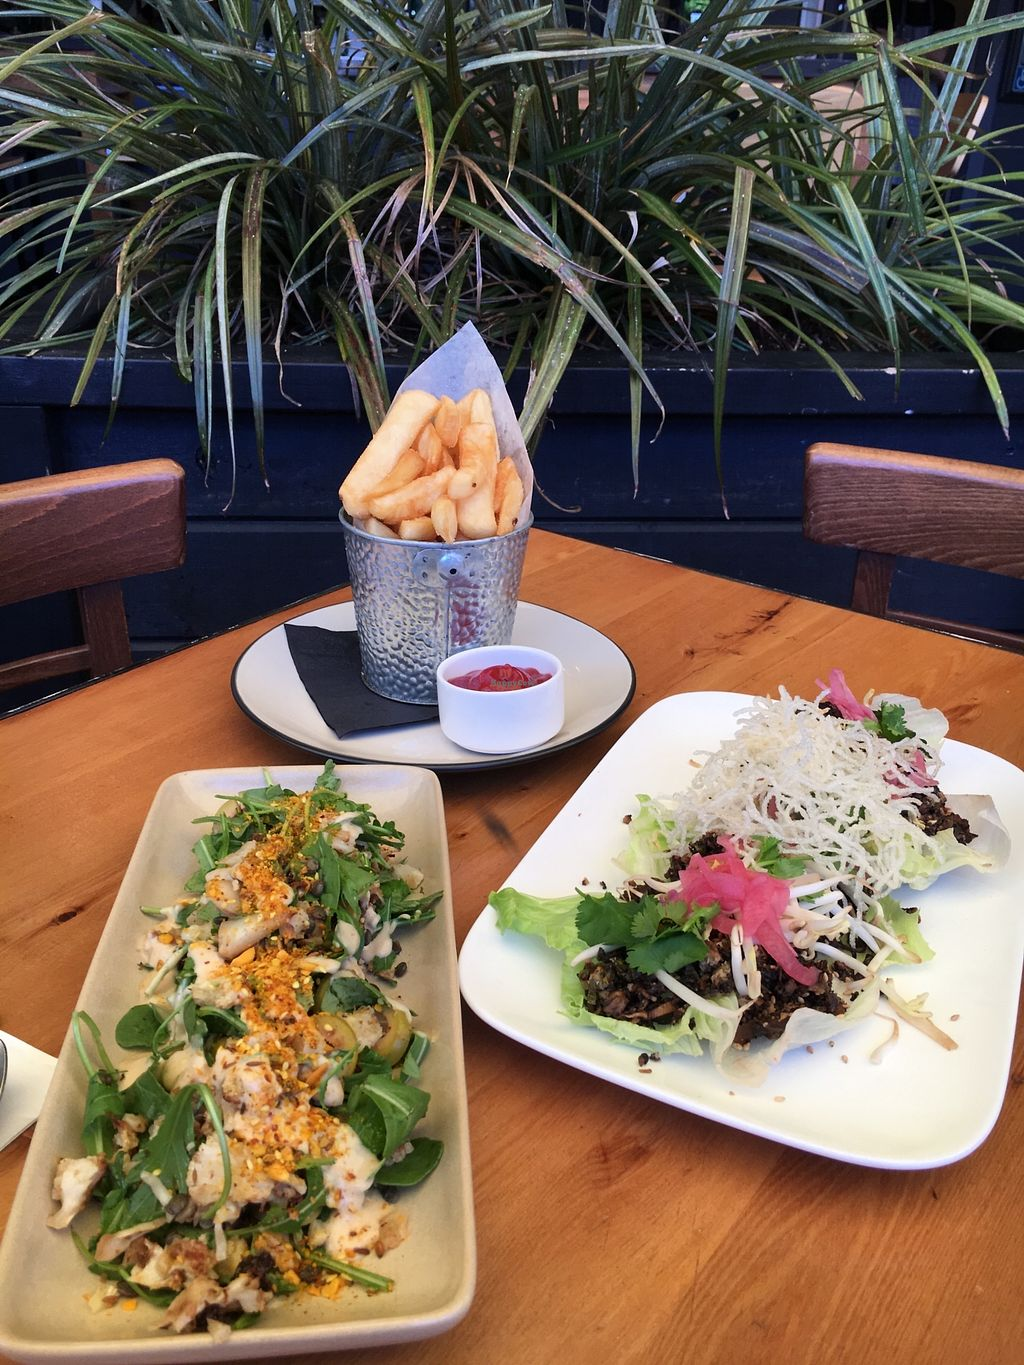 """Photo of Atticus Finch  by <a href=""""/members/profile/sousuneautrelentille"""">sousuneautrelentille</a> <br/>Fries (top), cauliflower/lentil salad (left), and mushroom/tofu lettuce wraps (right) <br/> March 9, 2018  - <a href='/contact/abuse/image/103721/368429'>Report</a>"""